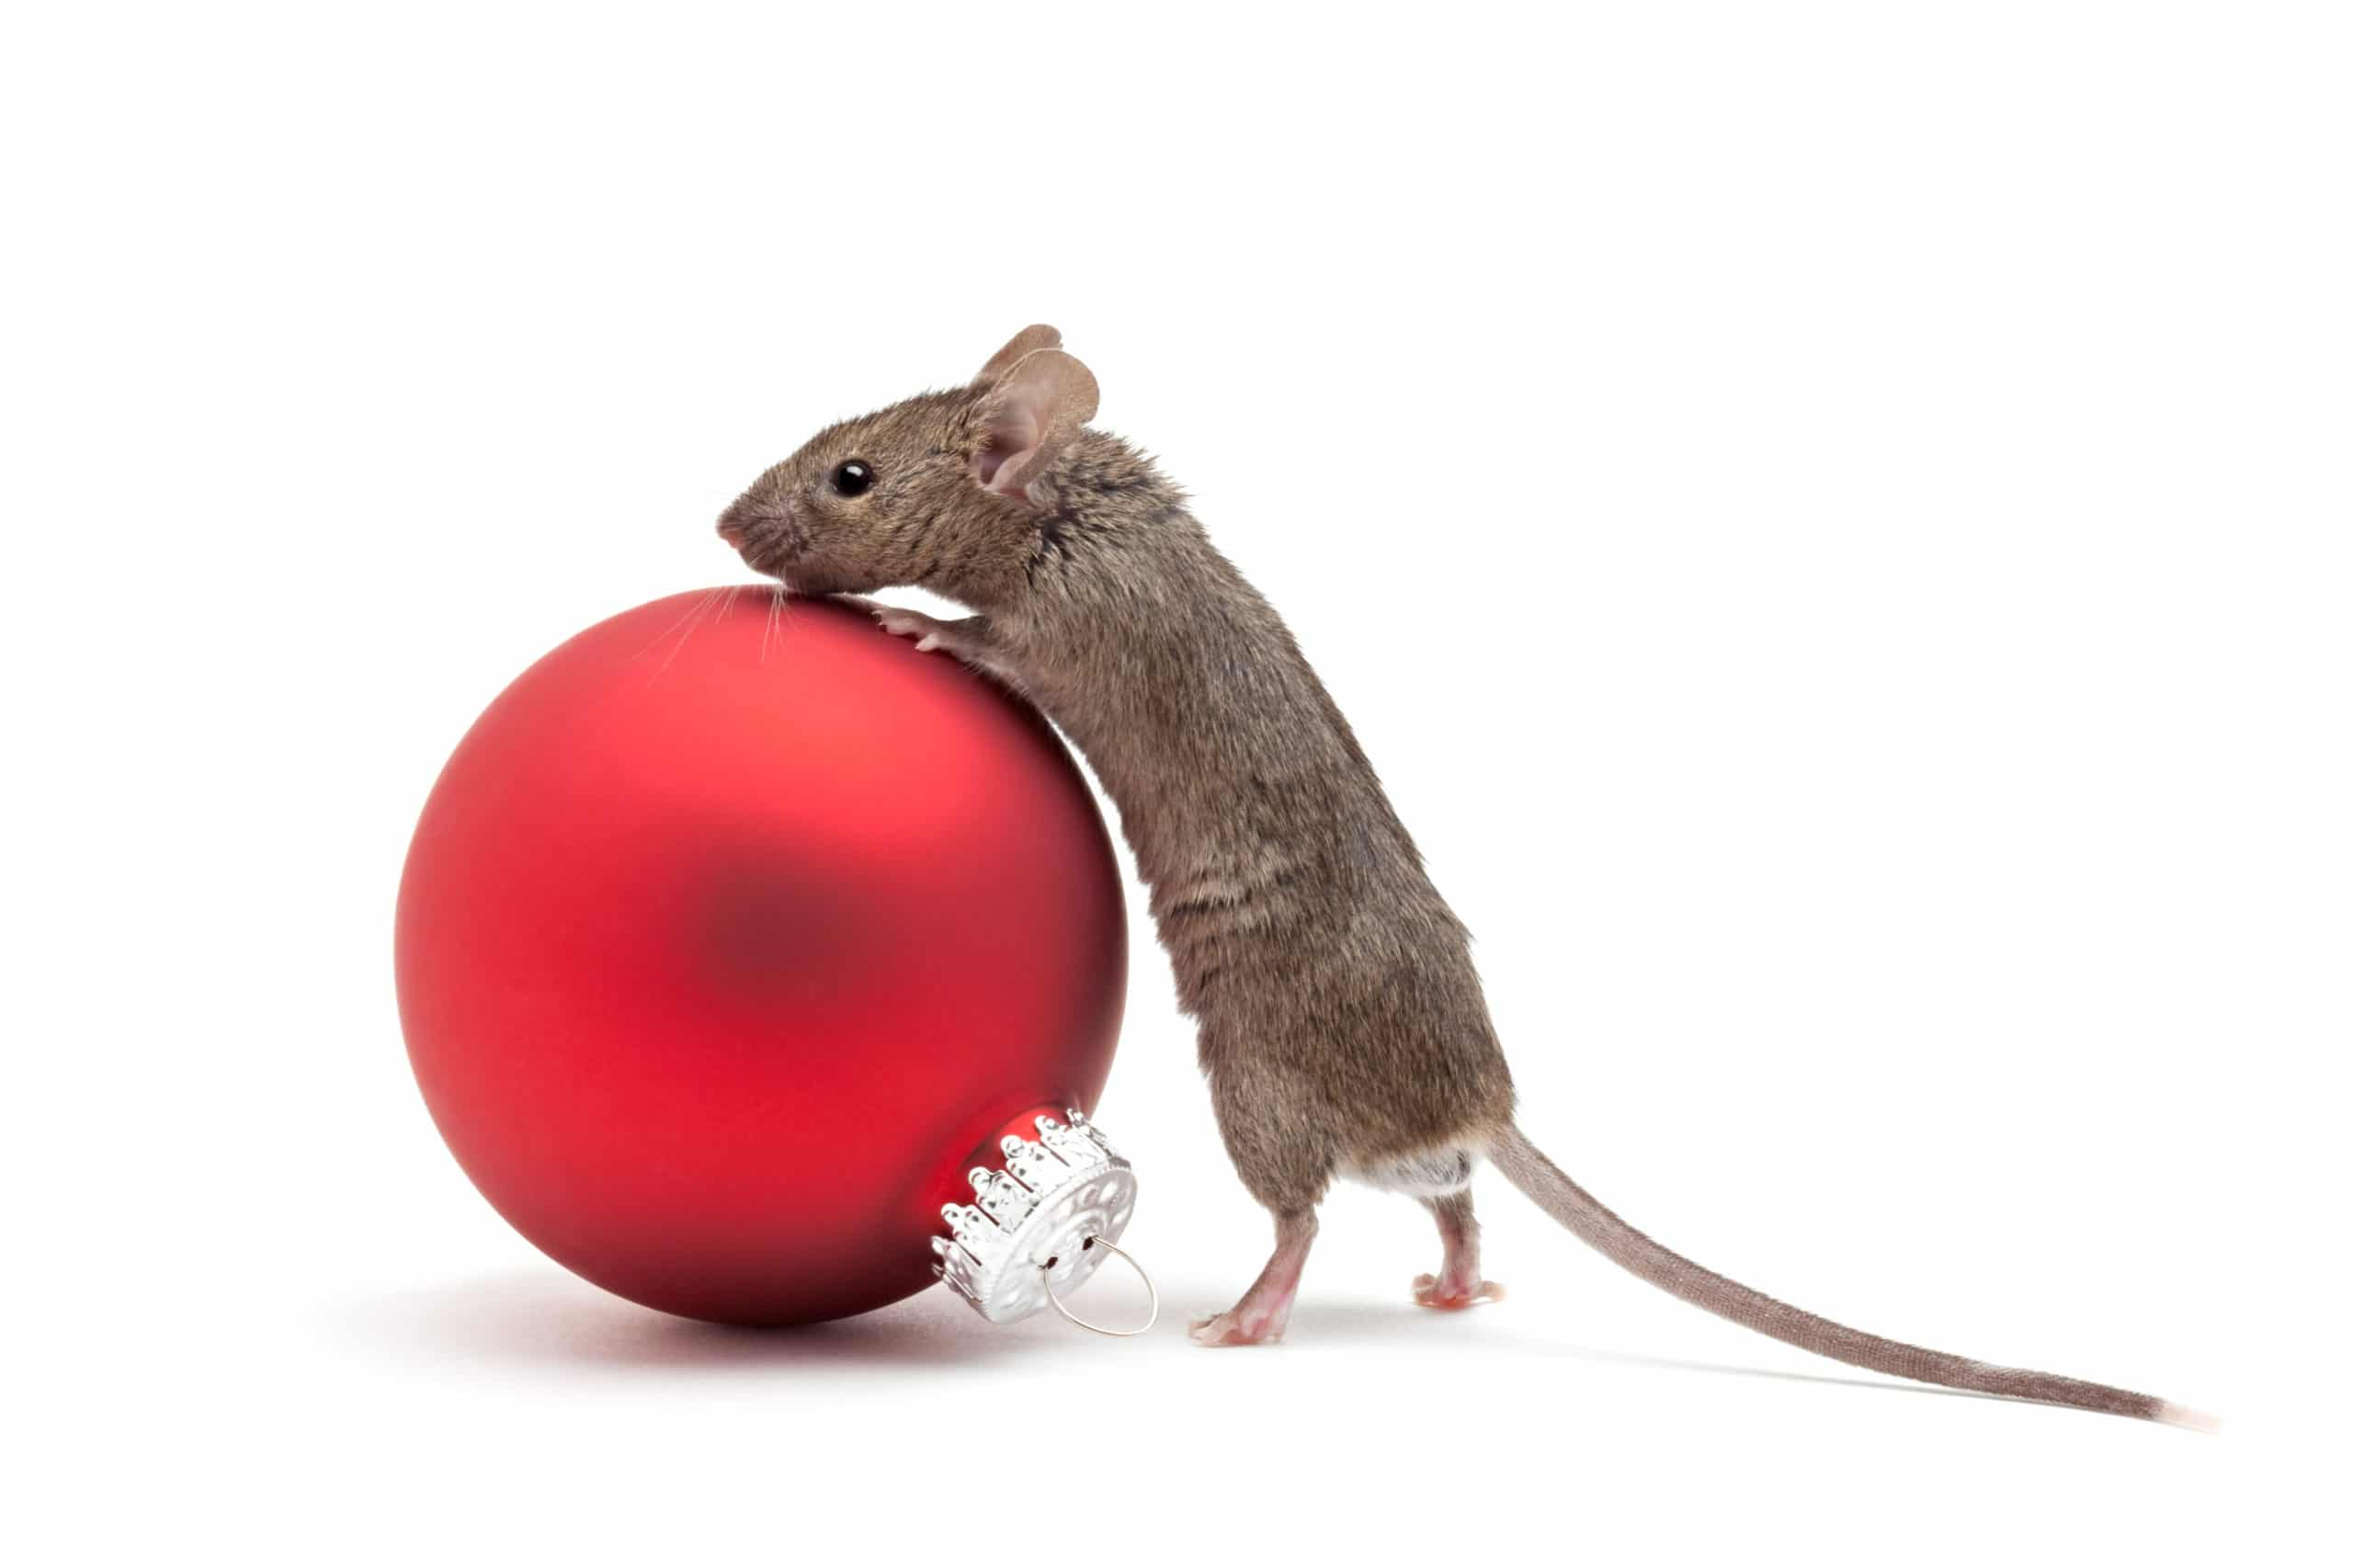 Mouse looking over a red Christmas ornament